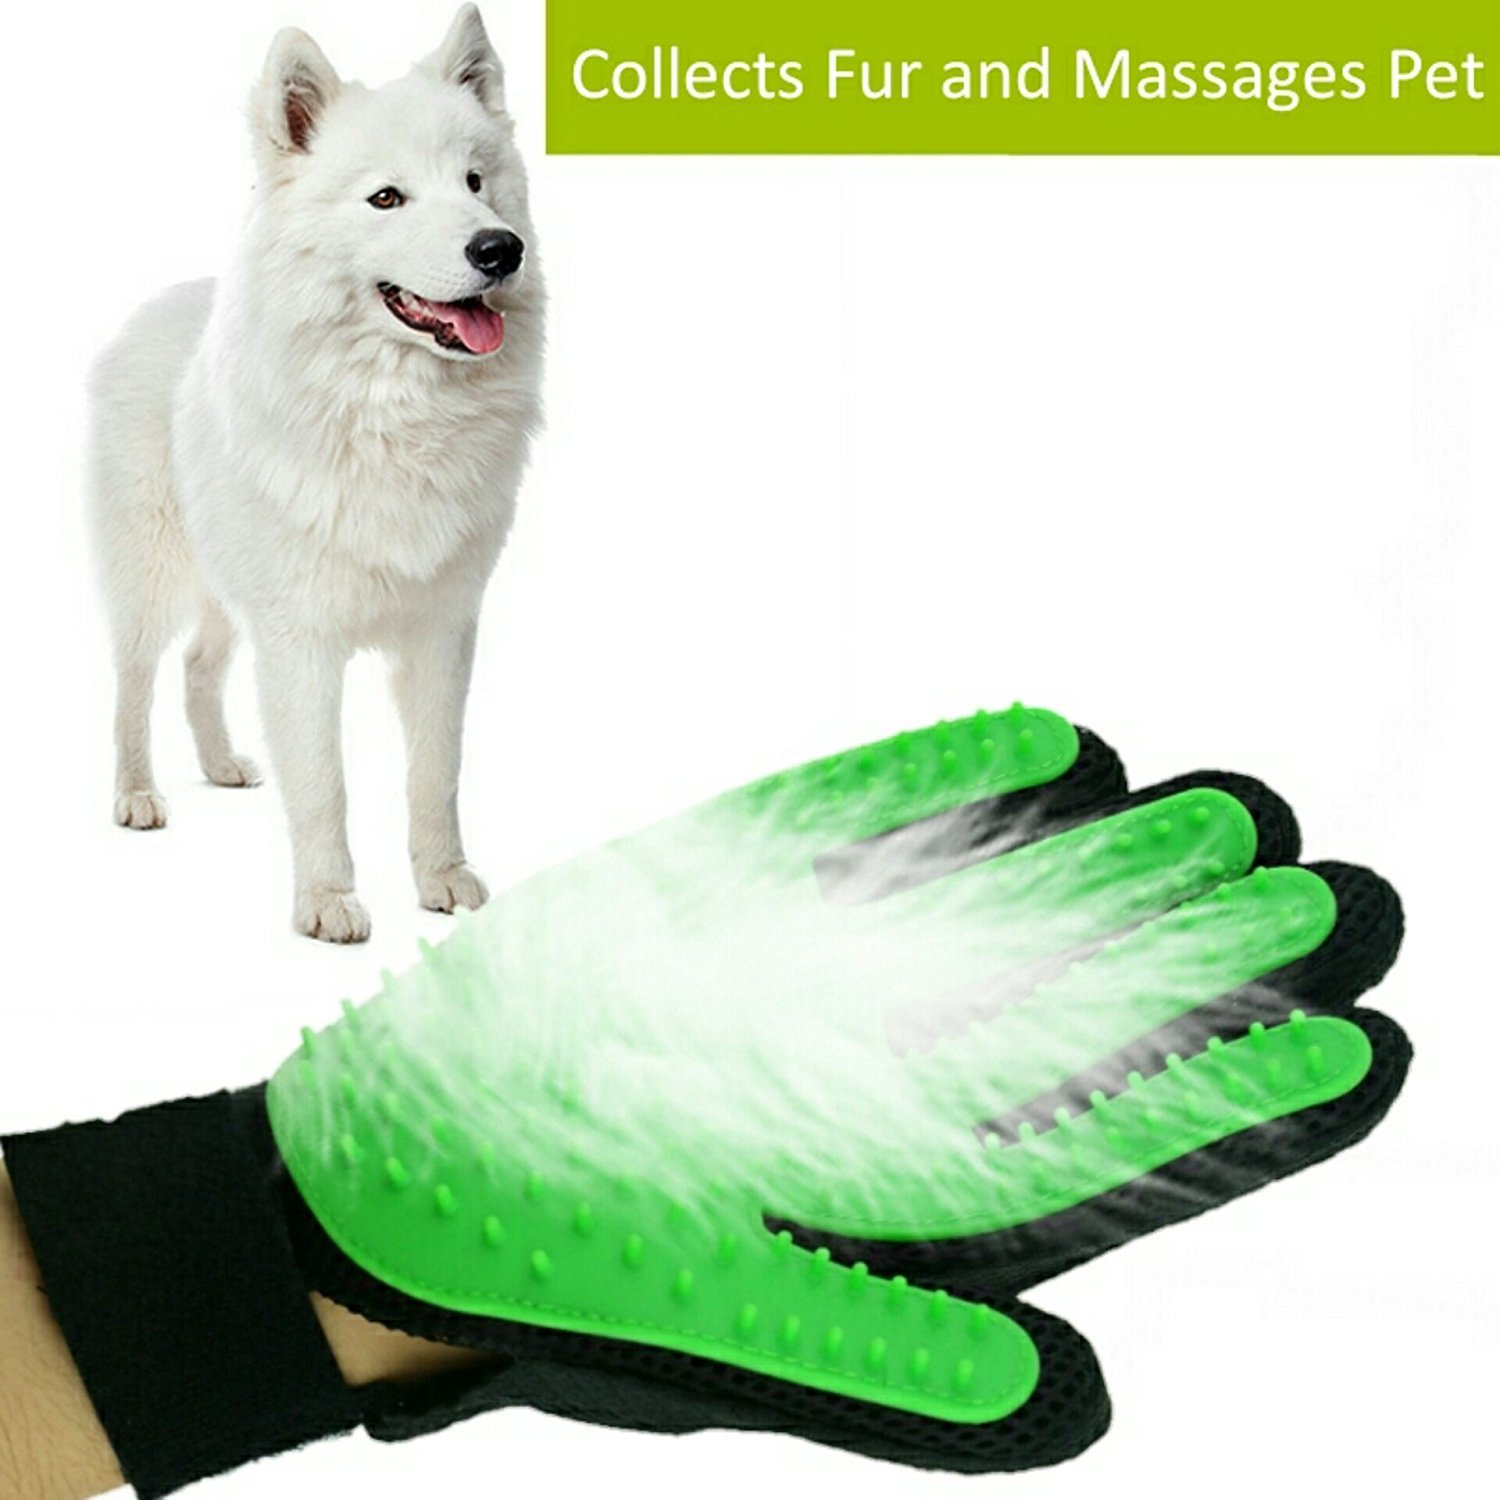 Petbob Pet Grooming Glove,Pet Deshedding Glove,Soft Gentle Pet Bath Massage Mitt,Silicone Pet Dematting Hair Removal Brush Glove Comb, For Long and Short Haired Dogs Cats Bunnies (green) by petbob (Image #5)